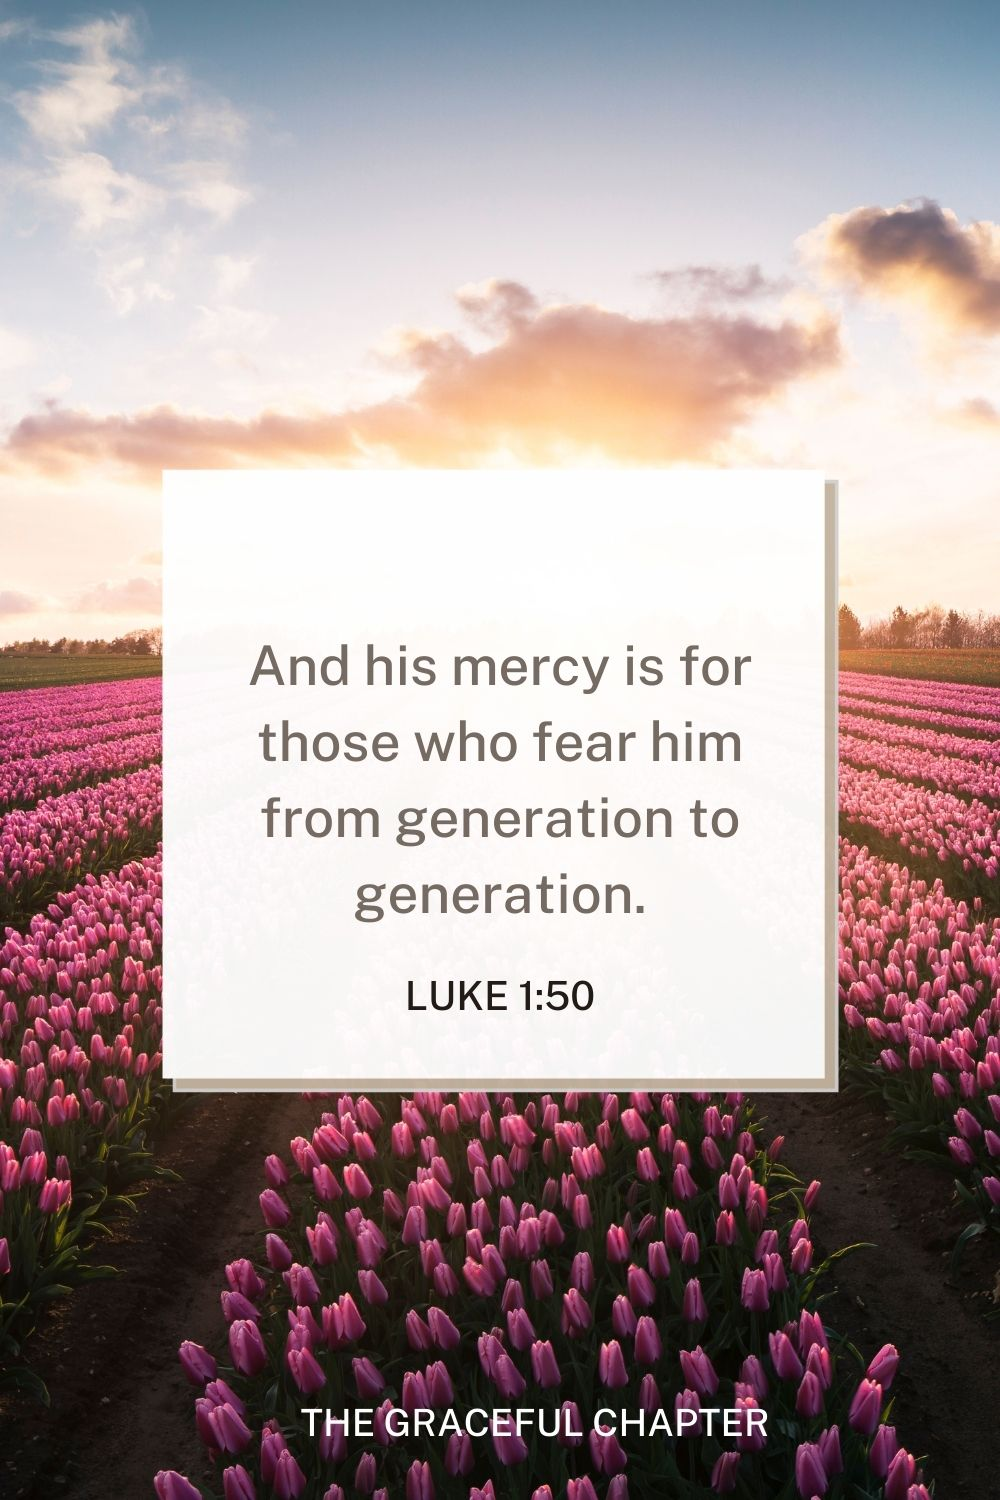 And his mercy is for those who fear him from generation to generation. Luke 1:50